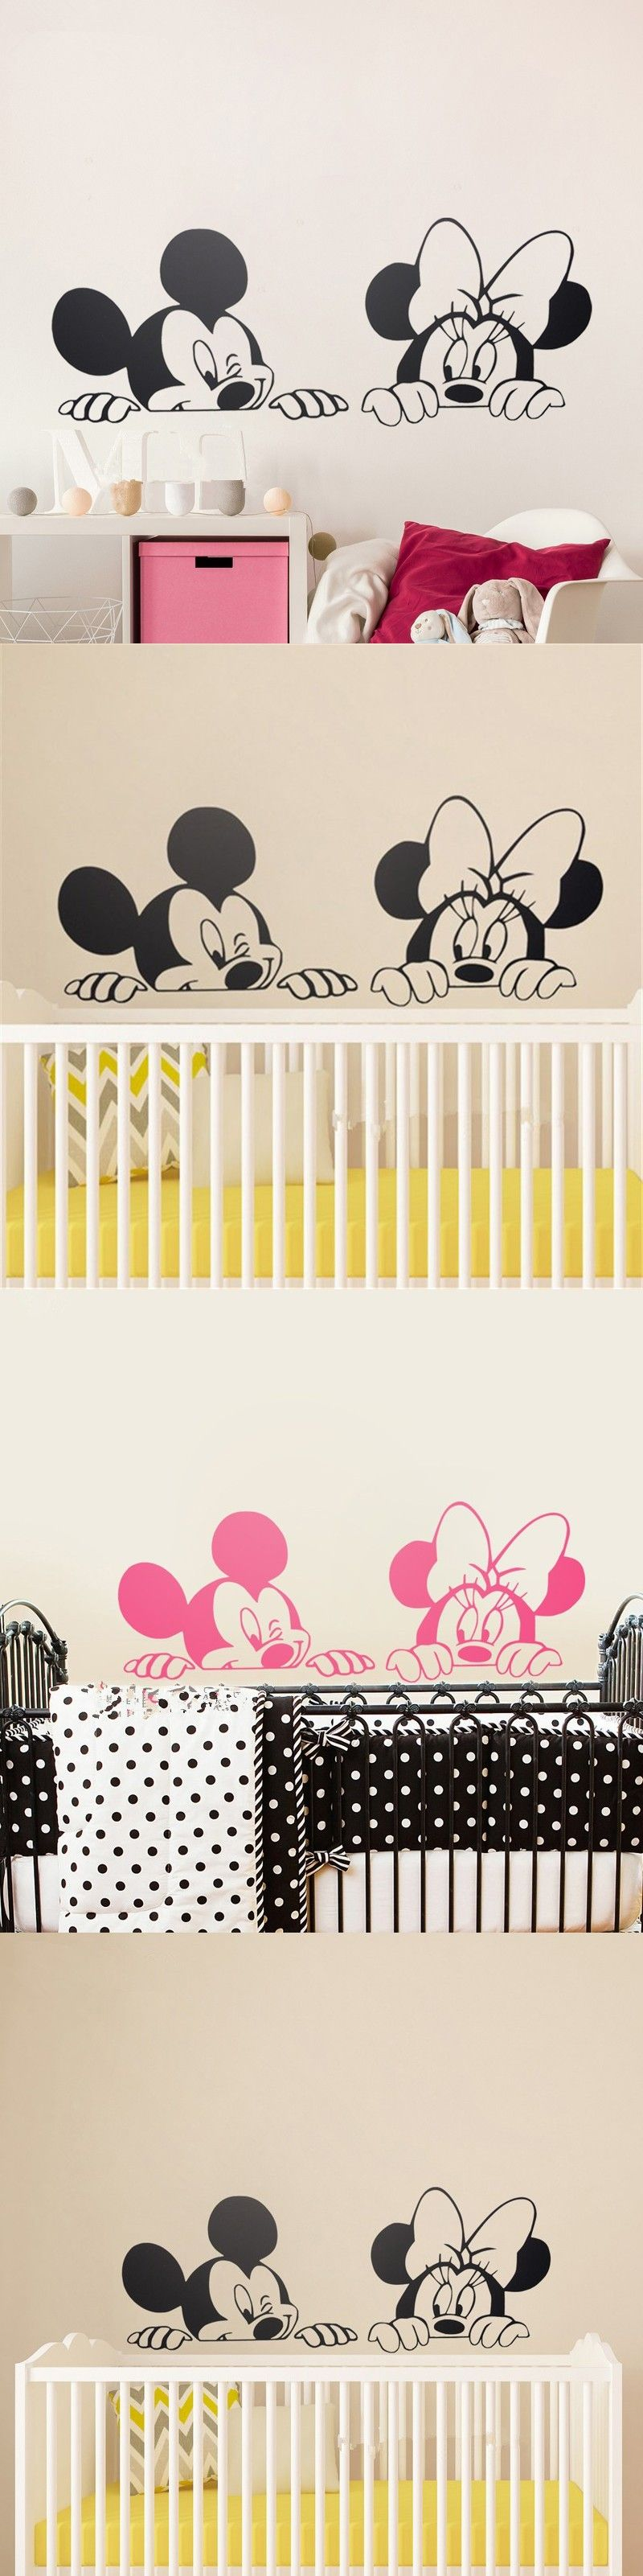 cartoon mickey minnie mouse cute animal vinyl wall stickers mural wallpaper baby room decor. Black Bedroom Furniture Sets. Home Design Ideas